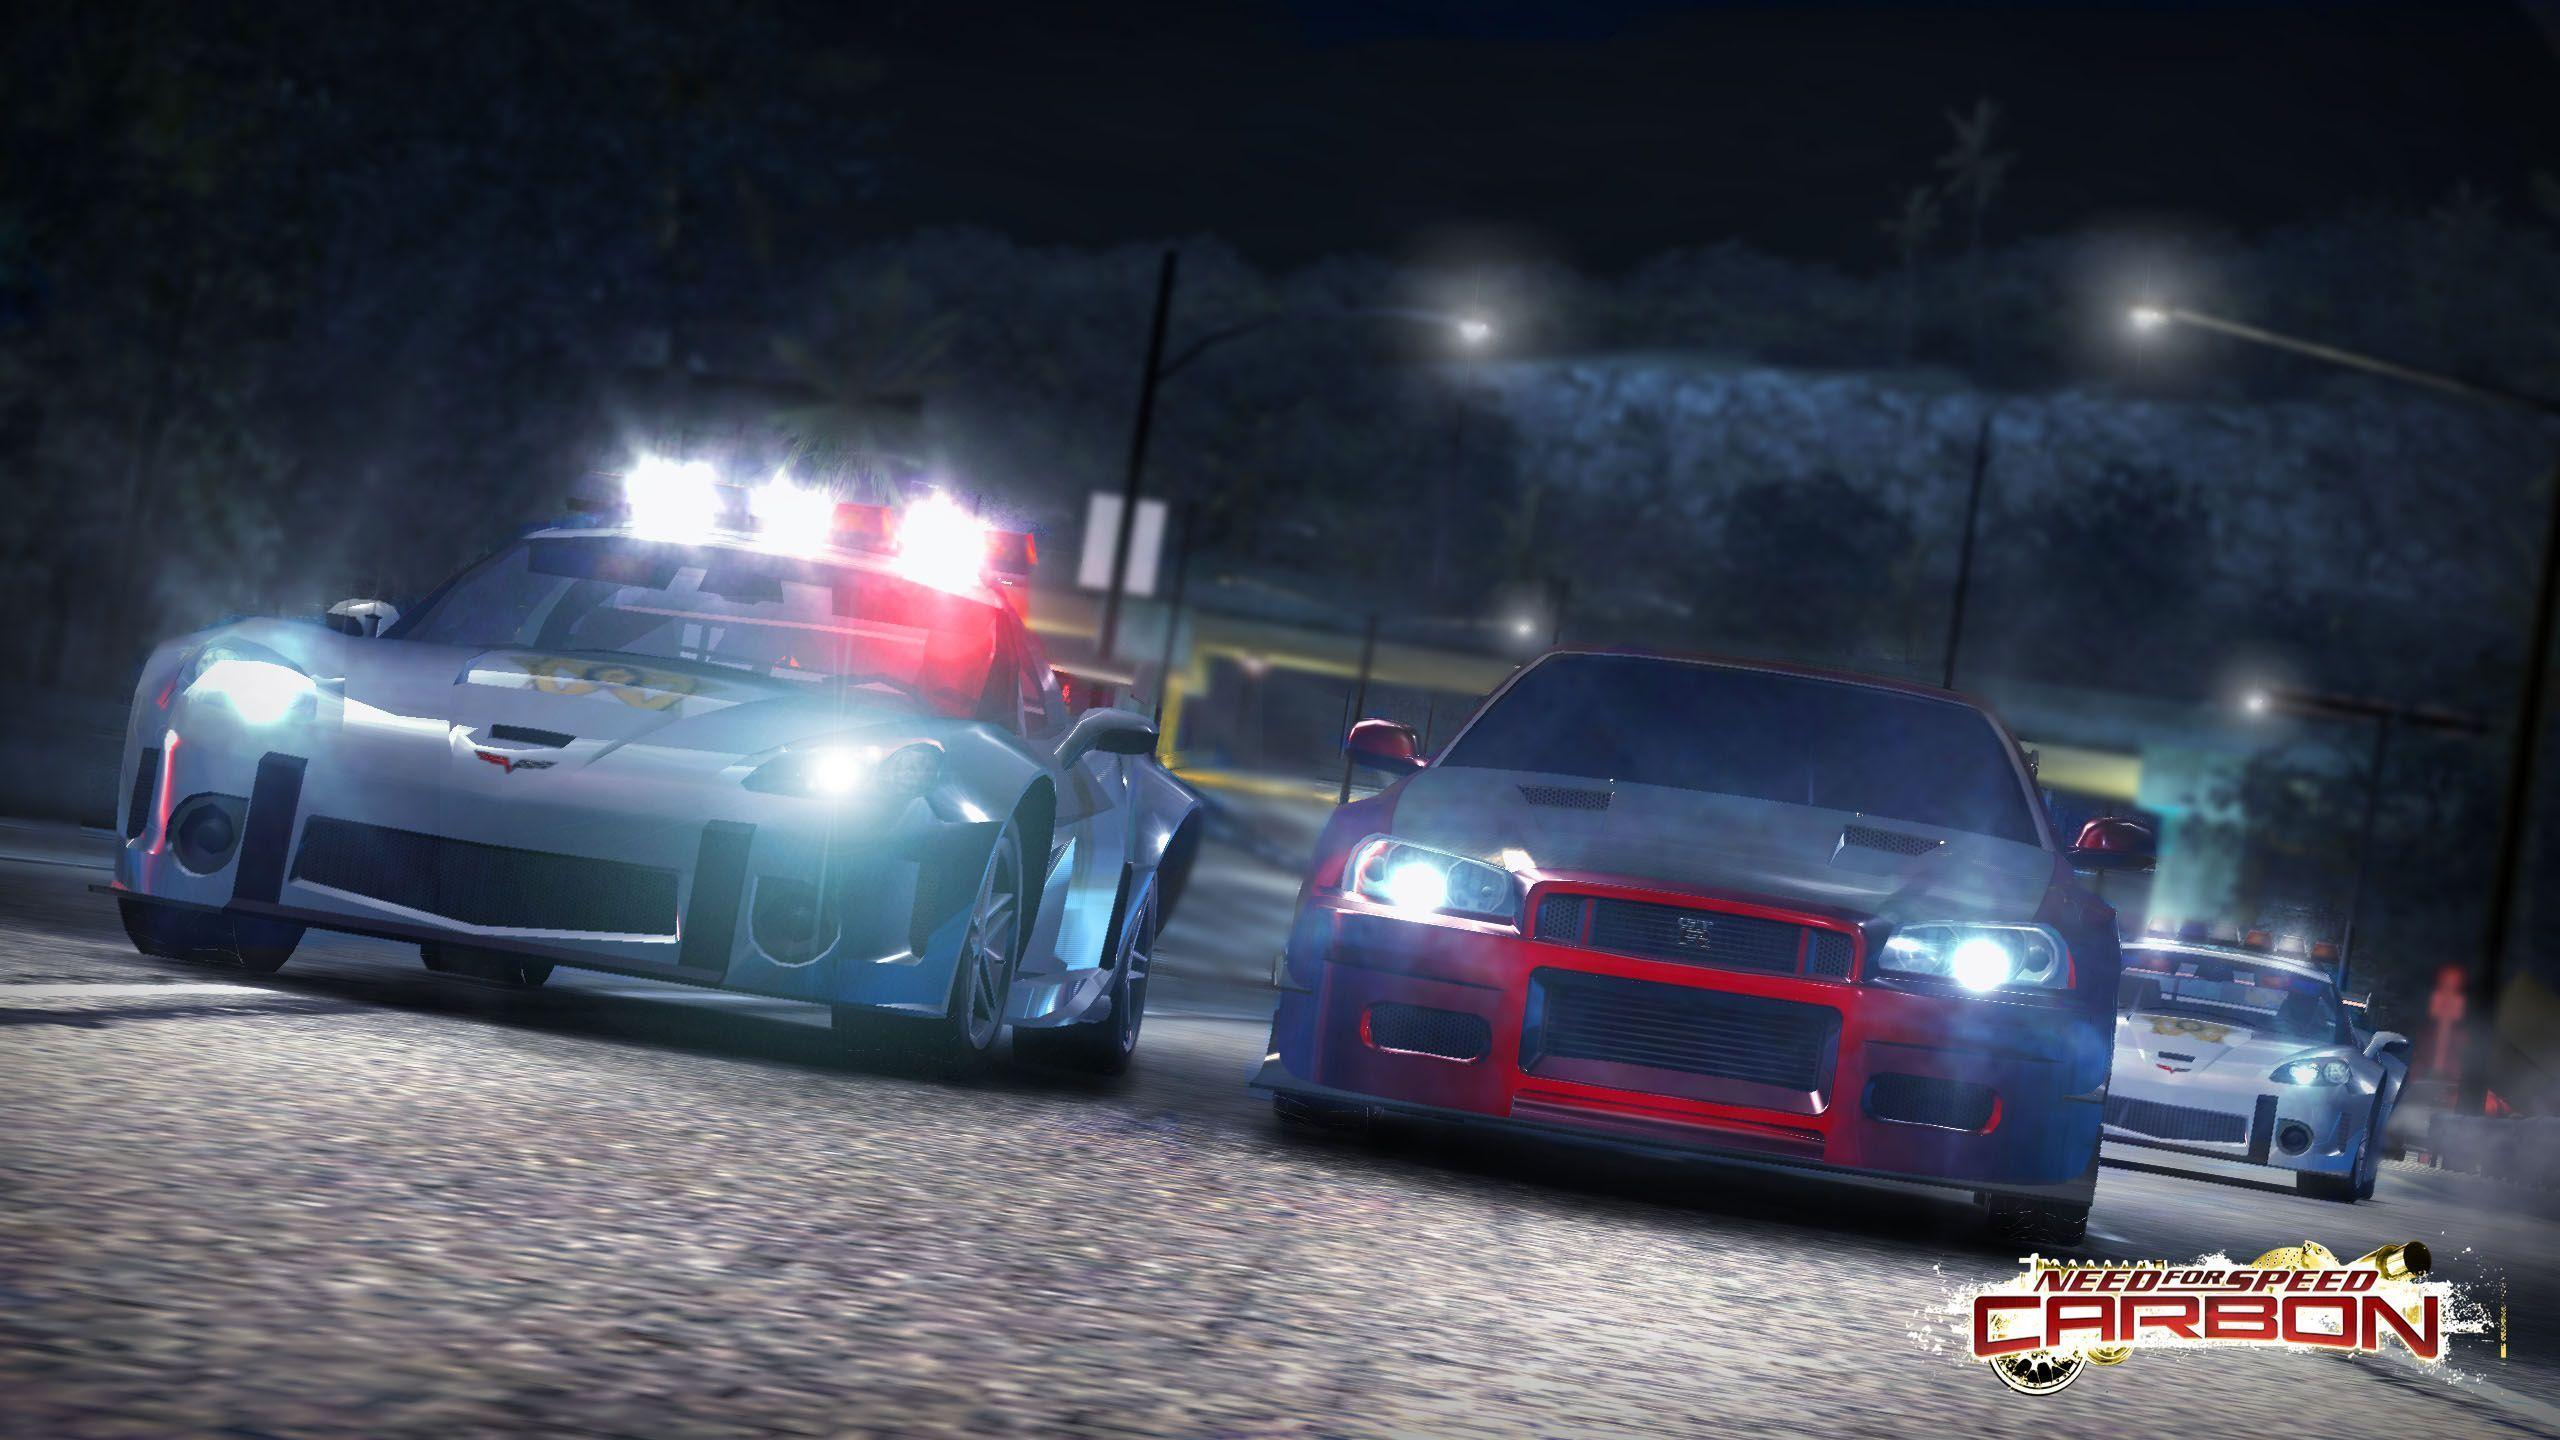 Need For Speed Carbon Wallpaper Cars Saga 640x512PX ~ Wallpaper .